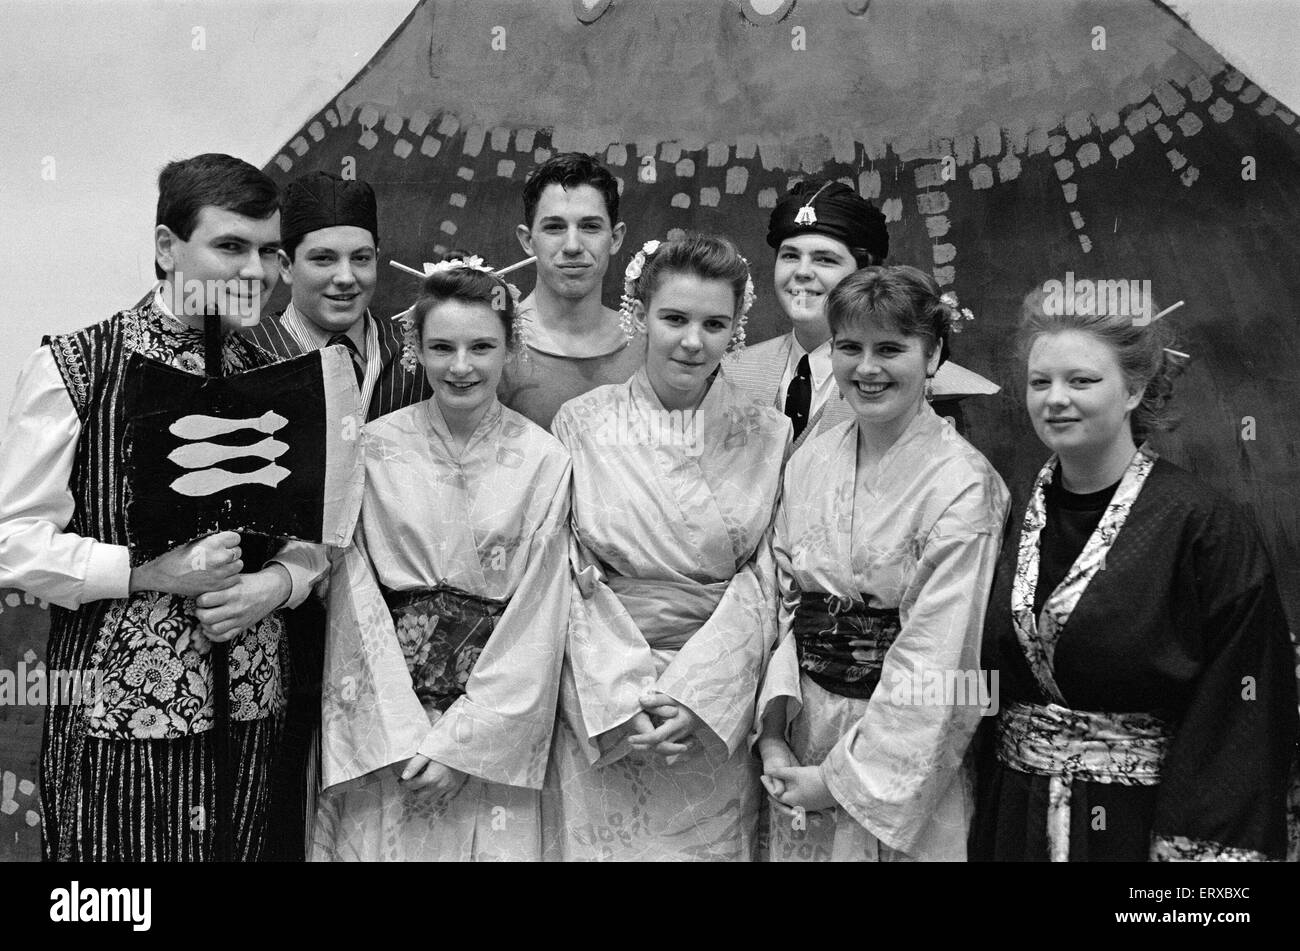 All Saints High School, Bradley present final production of G&S Mikado. 11th December 1991. - Stock Image